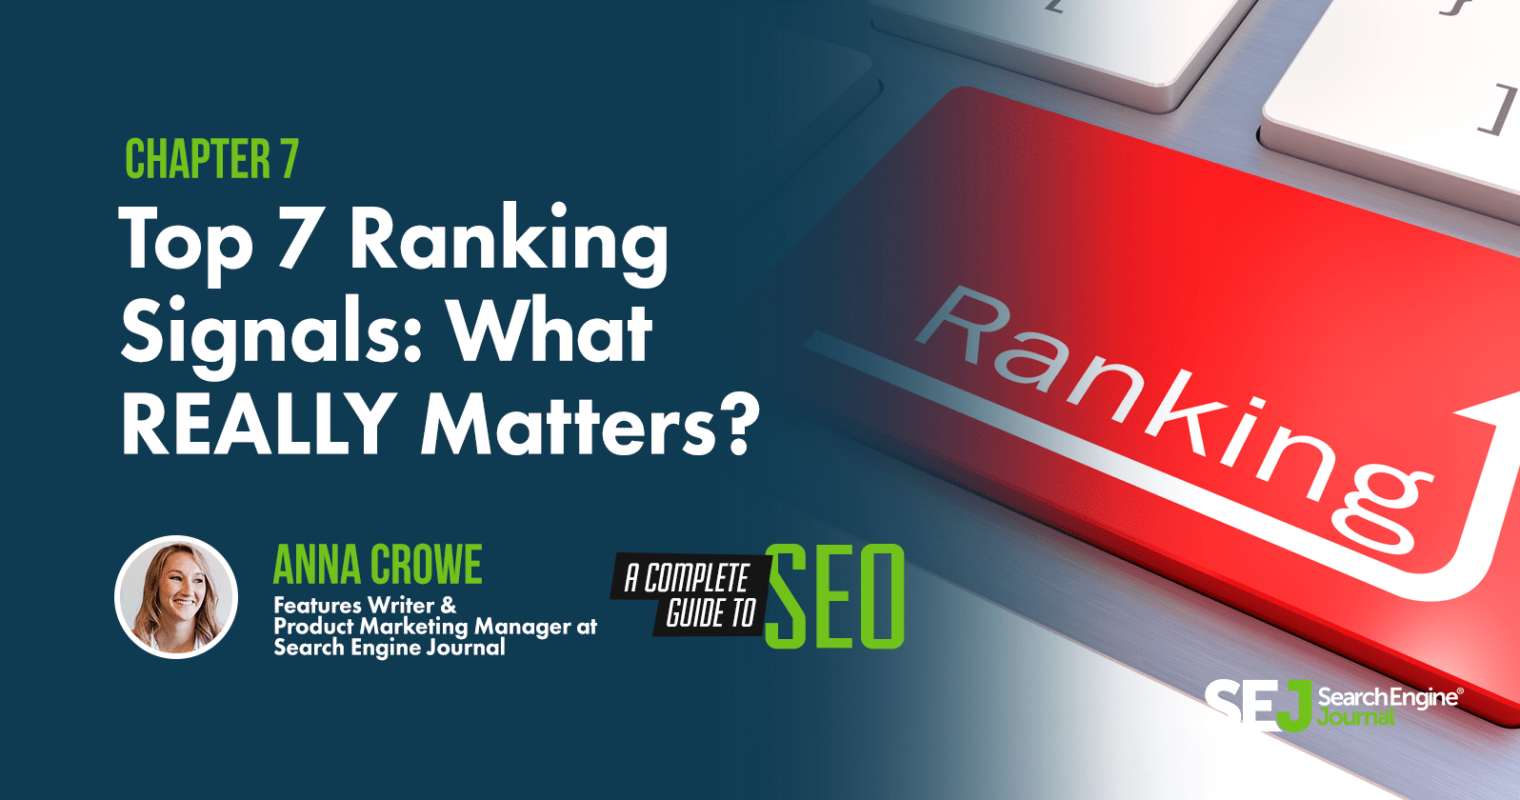 Top 7 Ranking Signals: What REALLY Matters in 2020